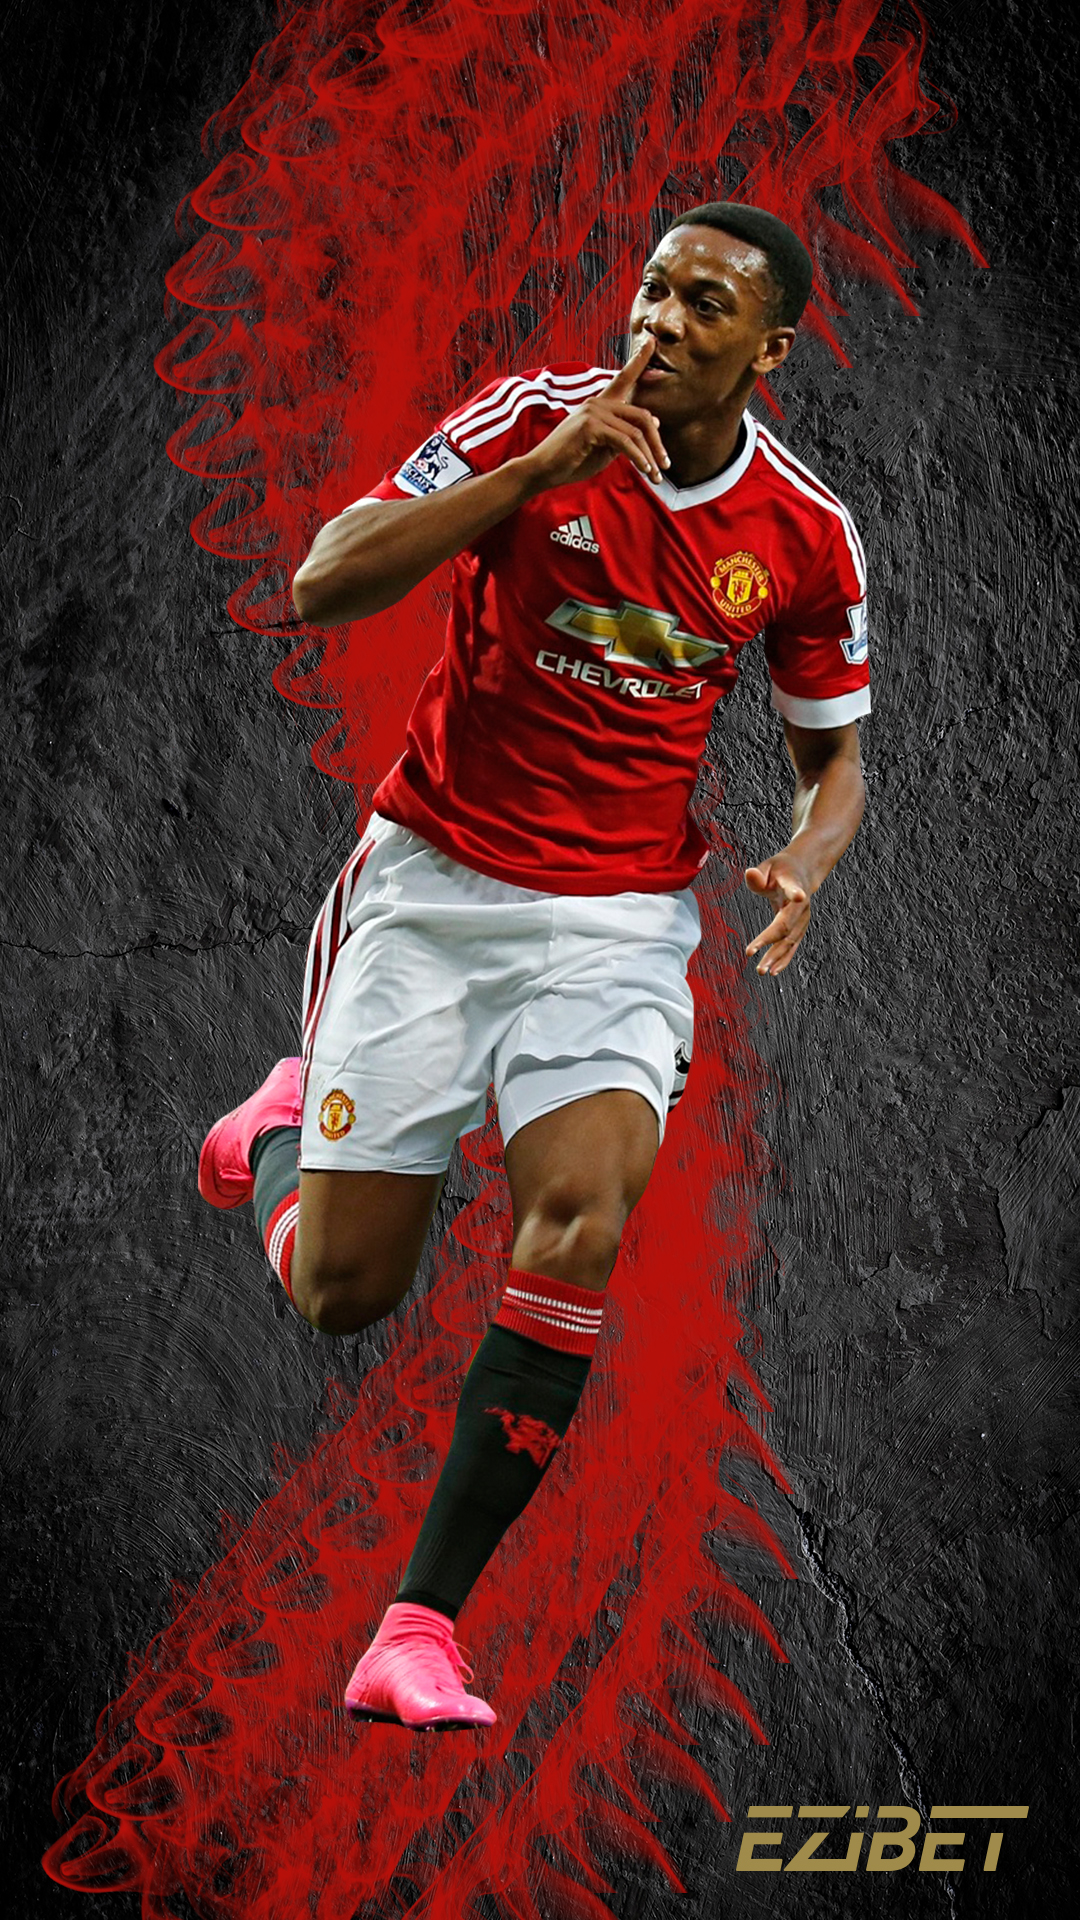 Ezibet mobile wallpapers MARTIAL.jpg